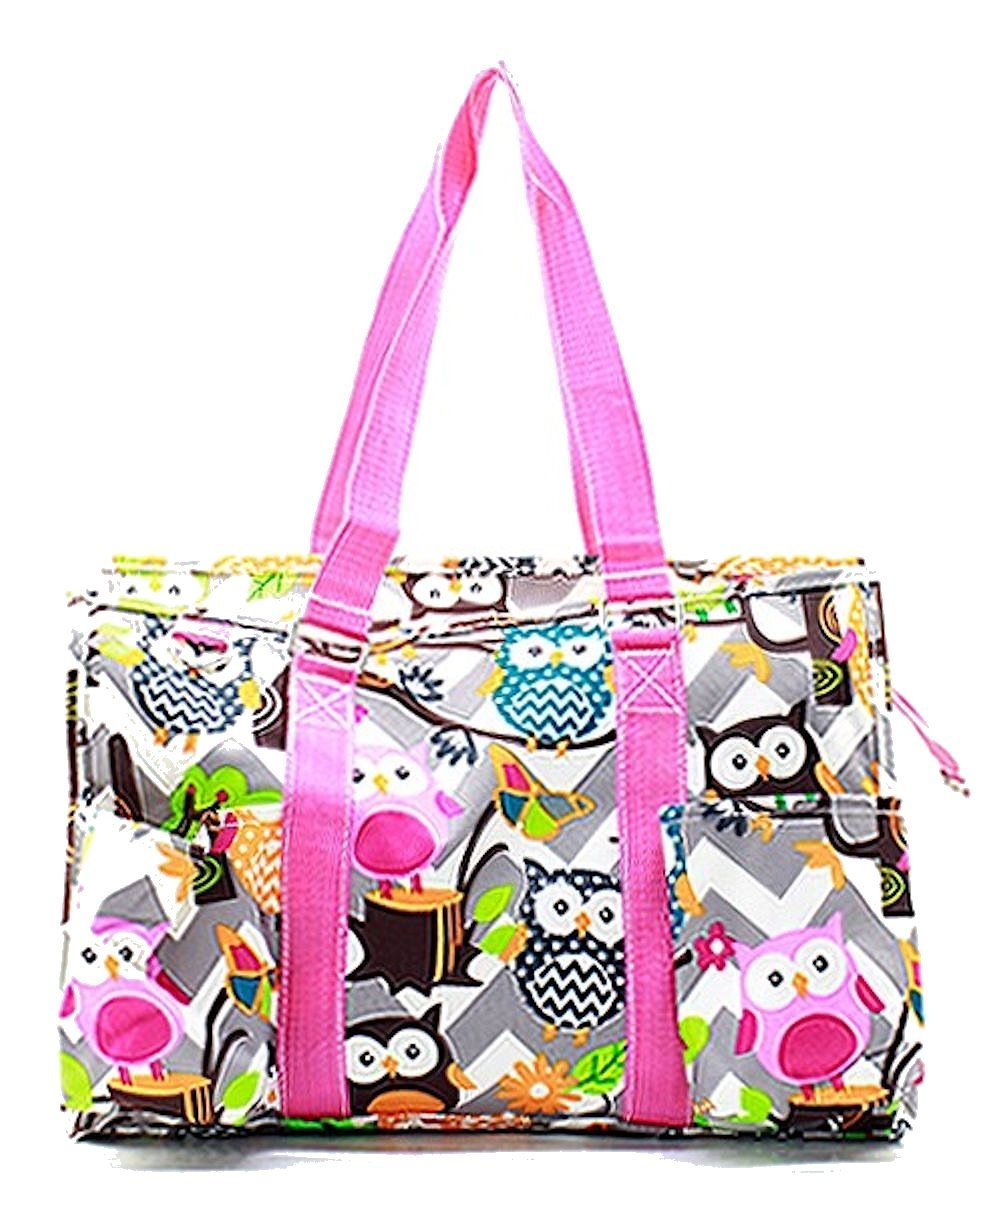 N Gil All Purpose Organizer Medium Utility Tote Bag (Chevron Owl Grey/Hot Pink)